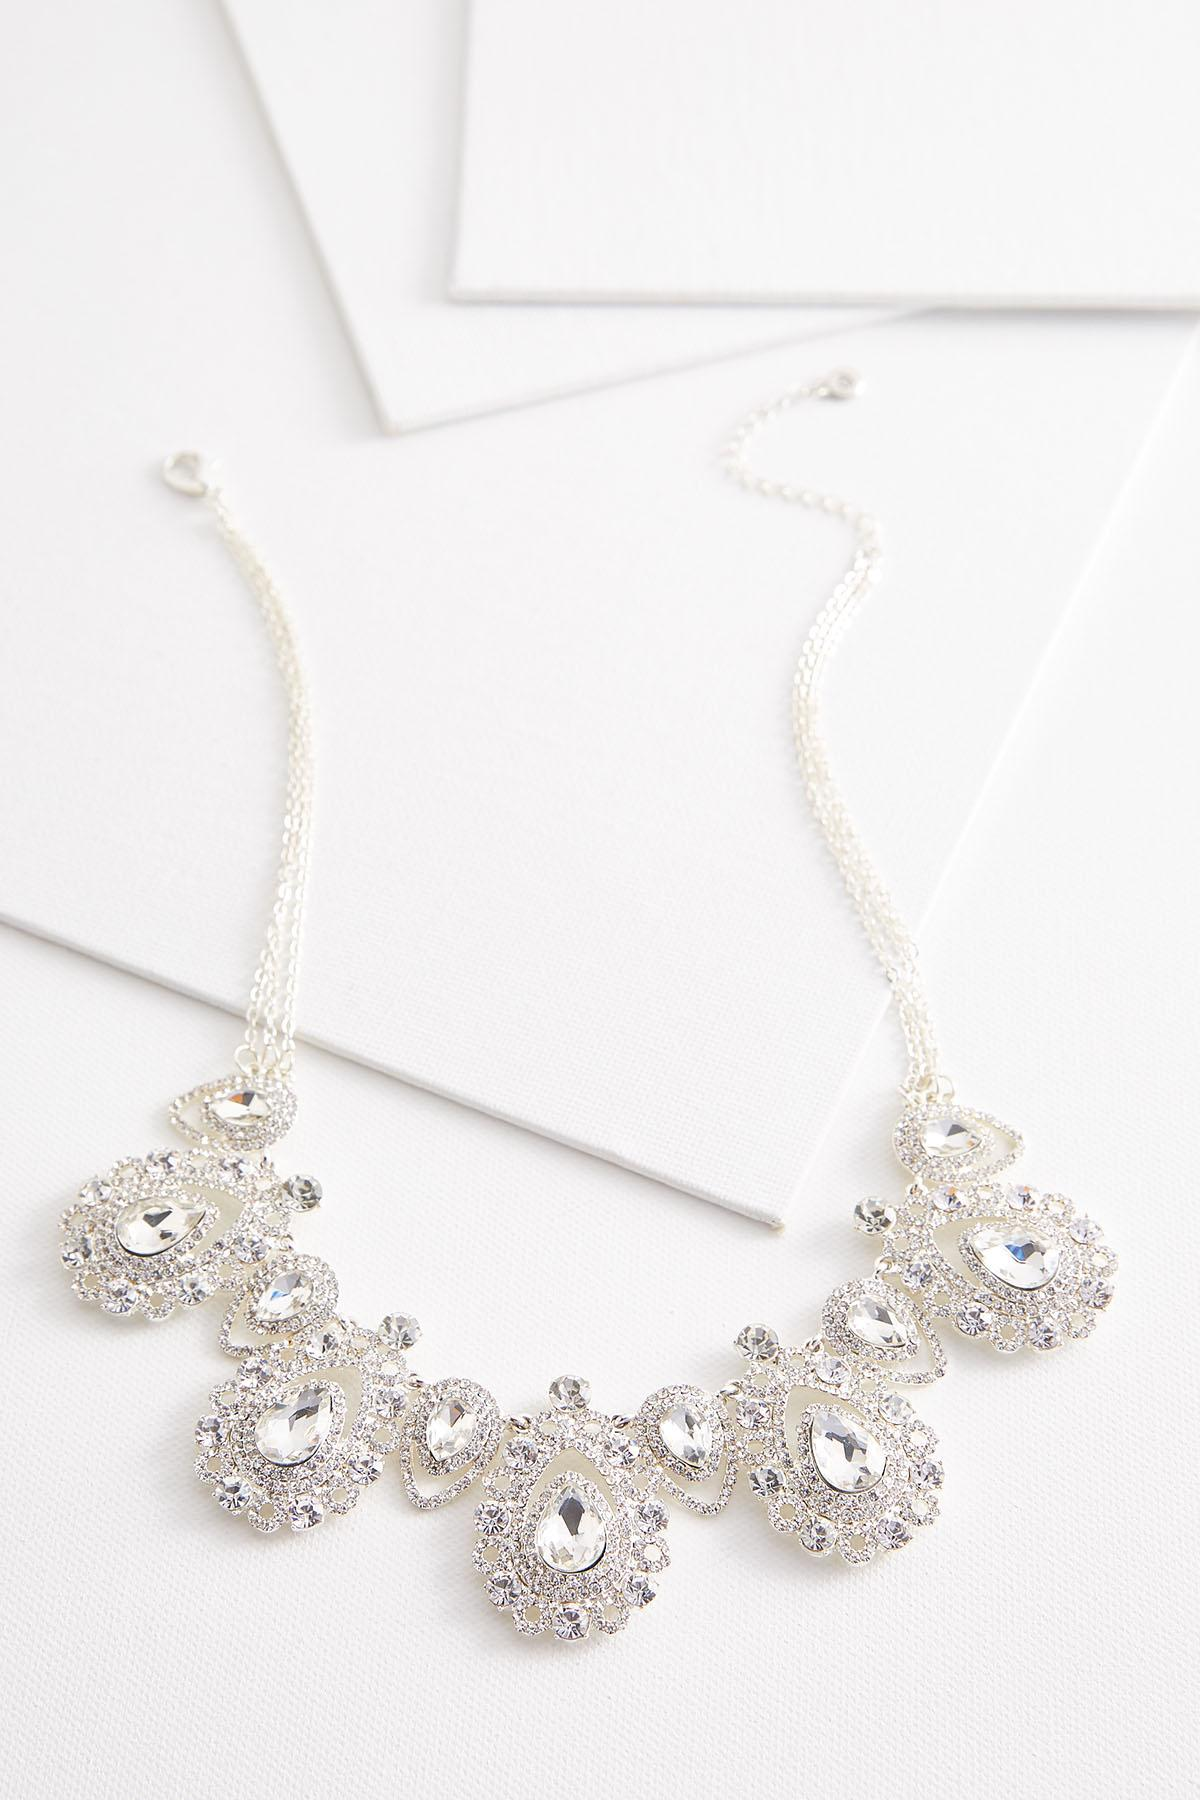 Tear Shaped Stone Bib Necklace